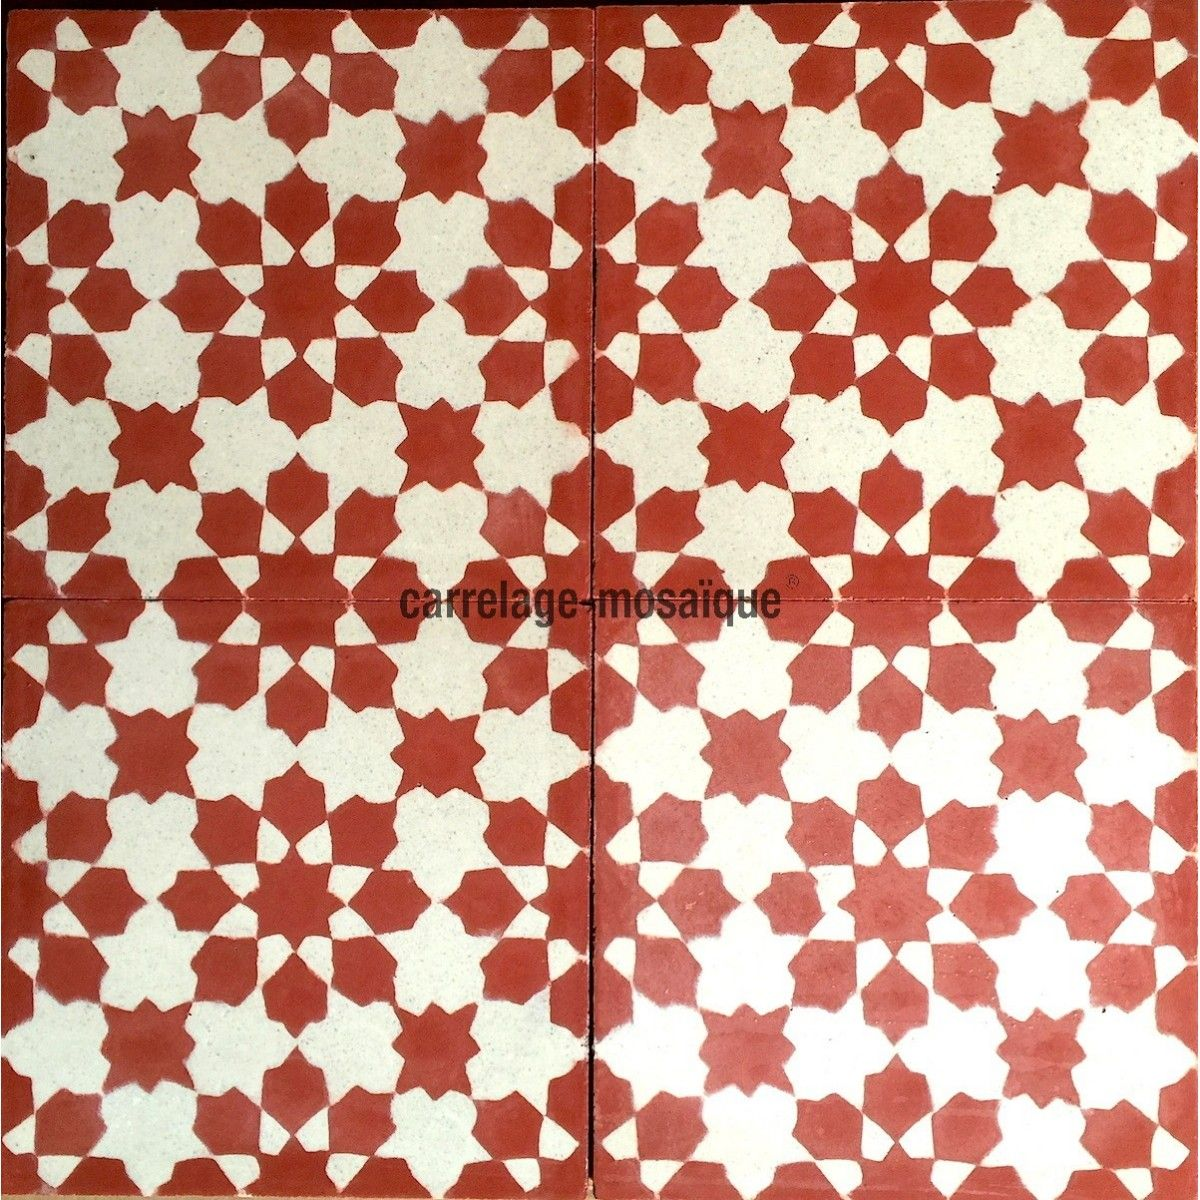 carreaux de ciment 1m2 modele prisma rouge carrelage mosaique carreaux ciment. Black Bedroom Furniture Sets. Home Design Ideas